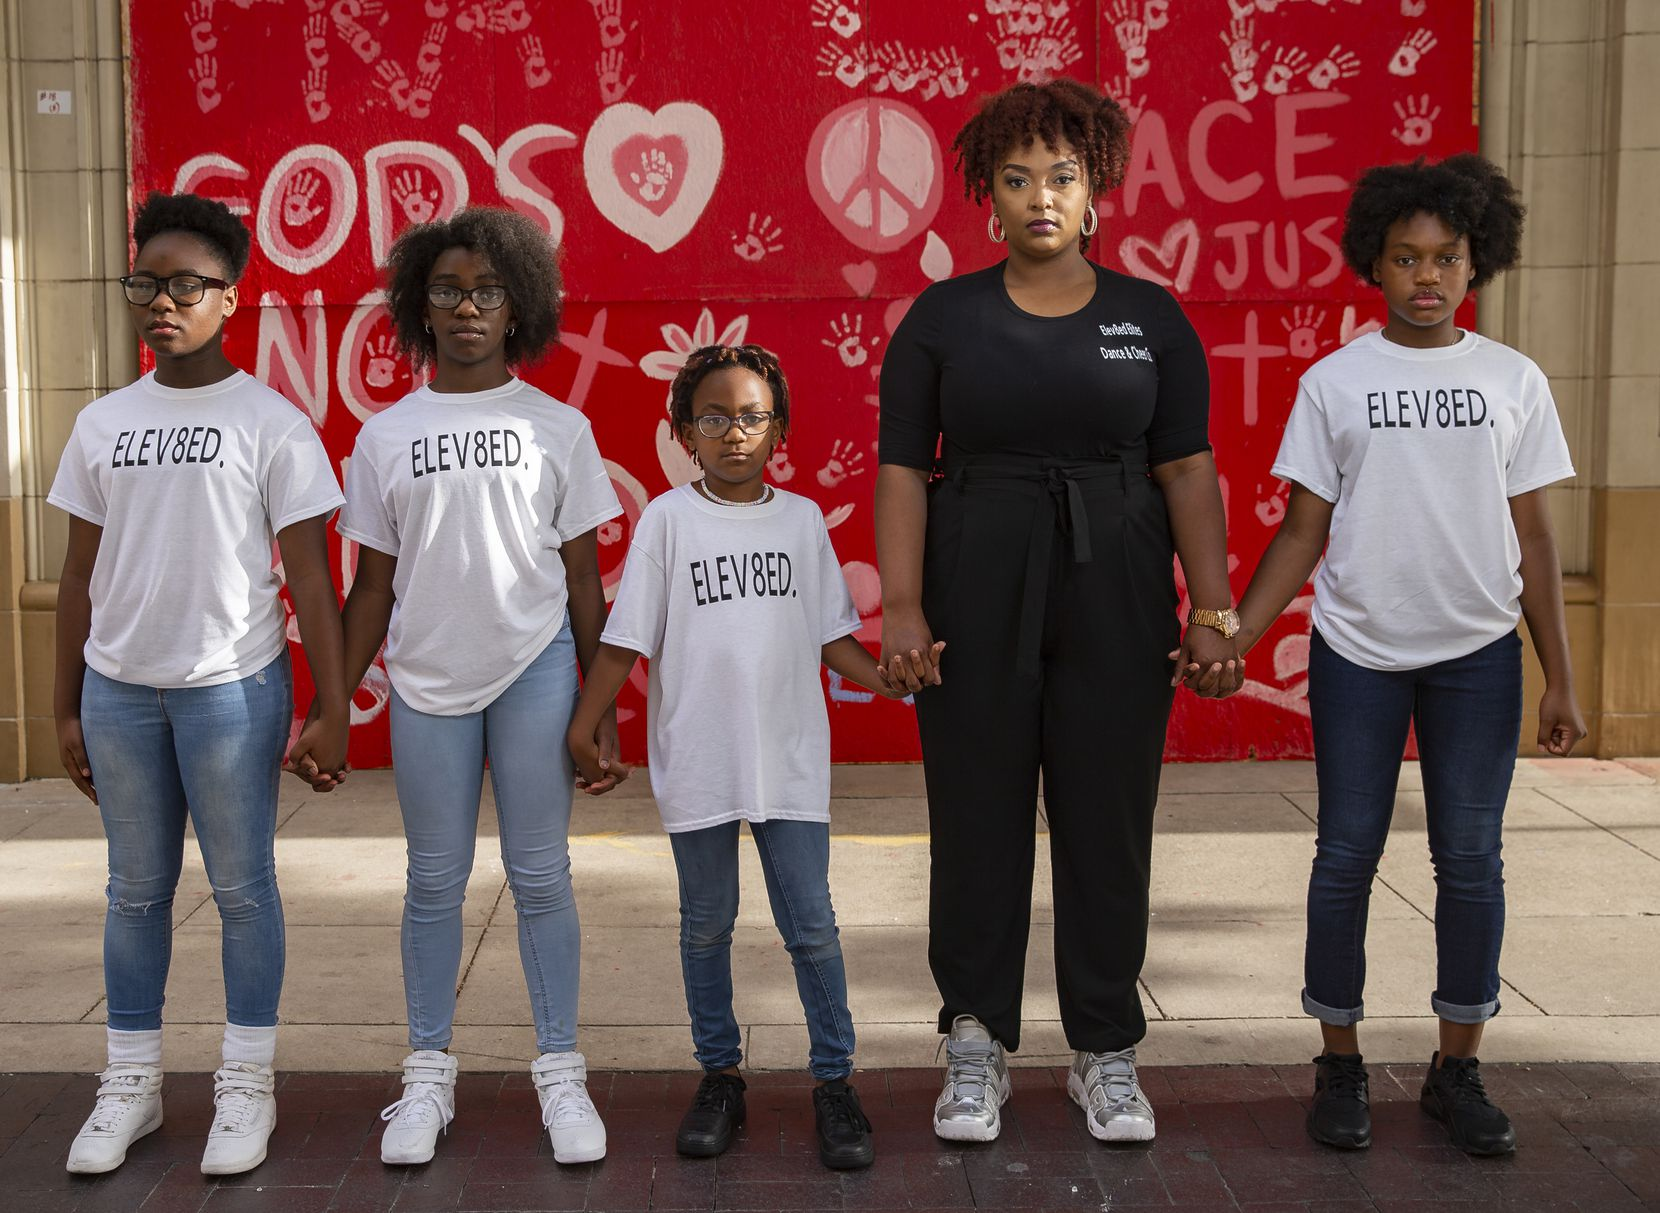 (From left) Members of Elev8ed Elites, Janyiah Cooks, 12, Zaria Fisher, 10, Arianna Roberts, 7, dance director Shantrail White and co-captain Sha'kyra Roberts, 13, pose for a photo on June 27, 2020 in Dallas. Elev8ed Elites is an all girls dance team that shot a video downtown in response to police brutality shortly after George Floyd died. (Juan Figueroa/ The Dallas Morning News)